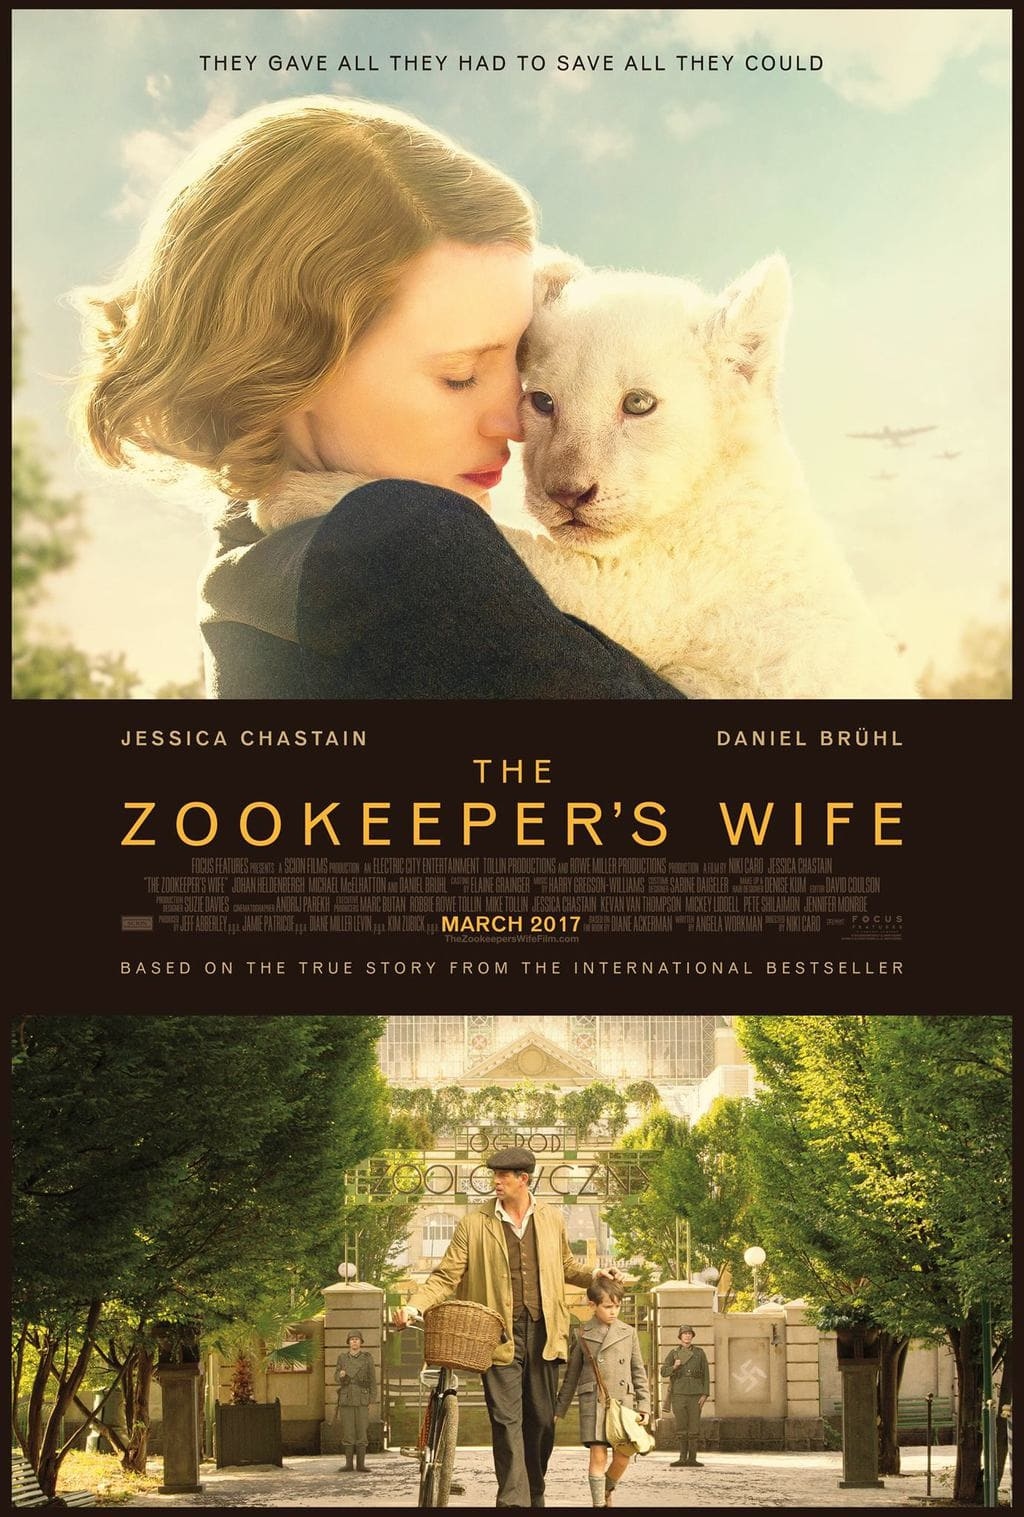 Have you been following along with the making if The Zookeepers Wife?